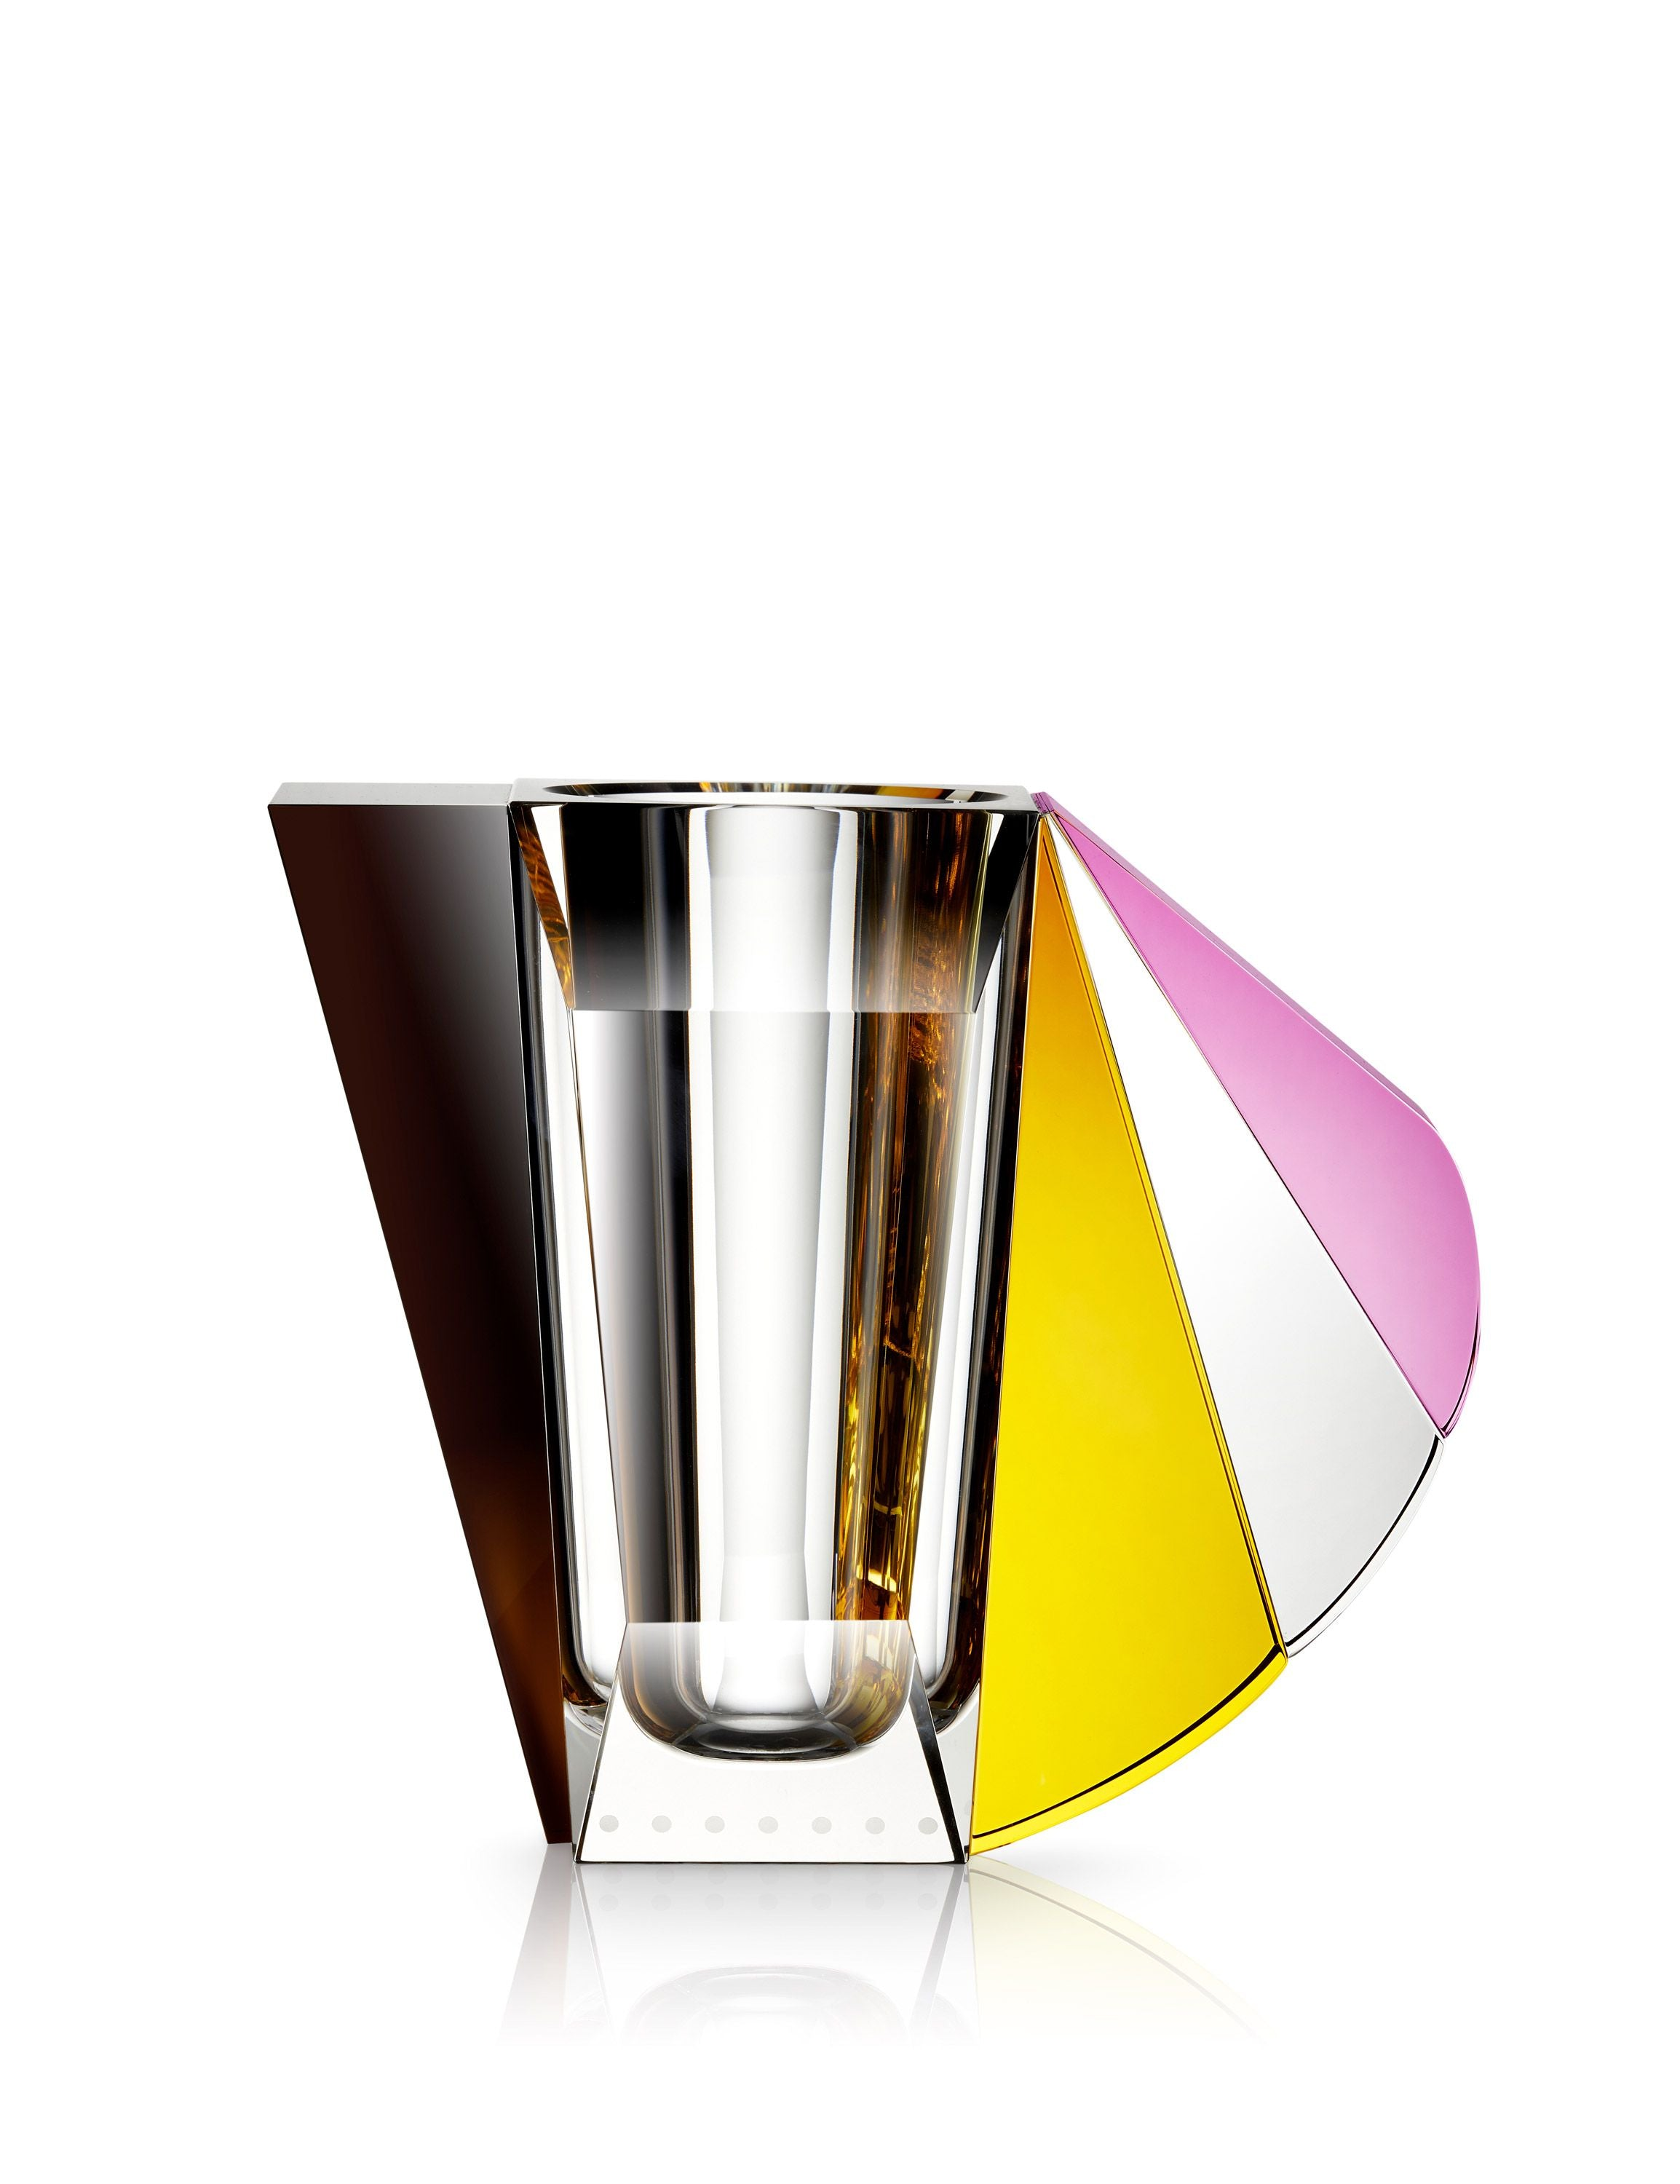 Tilbud - Reflections Copenhagen Grand Manhattan vase Brown/Rose/Clear/Yellow